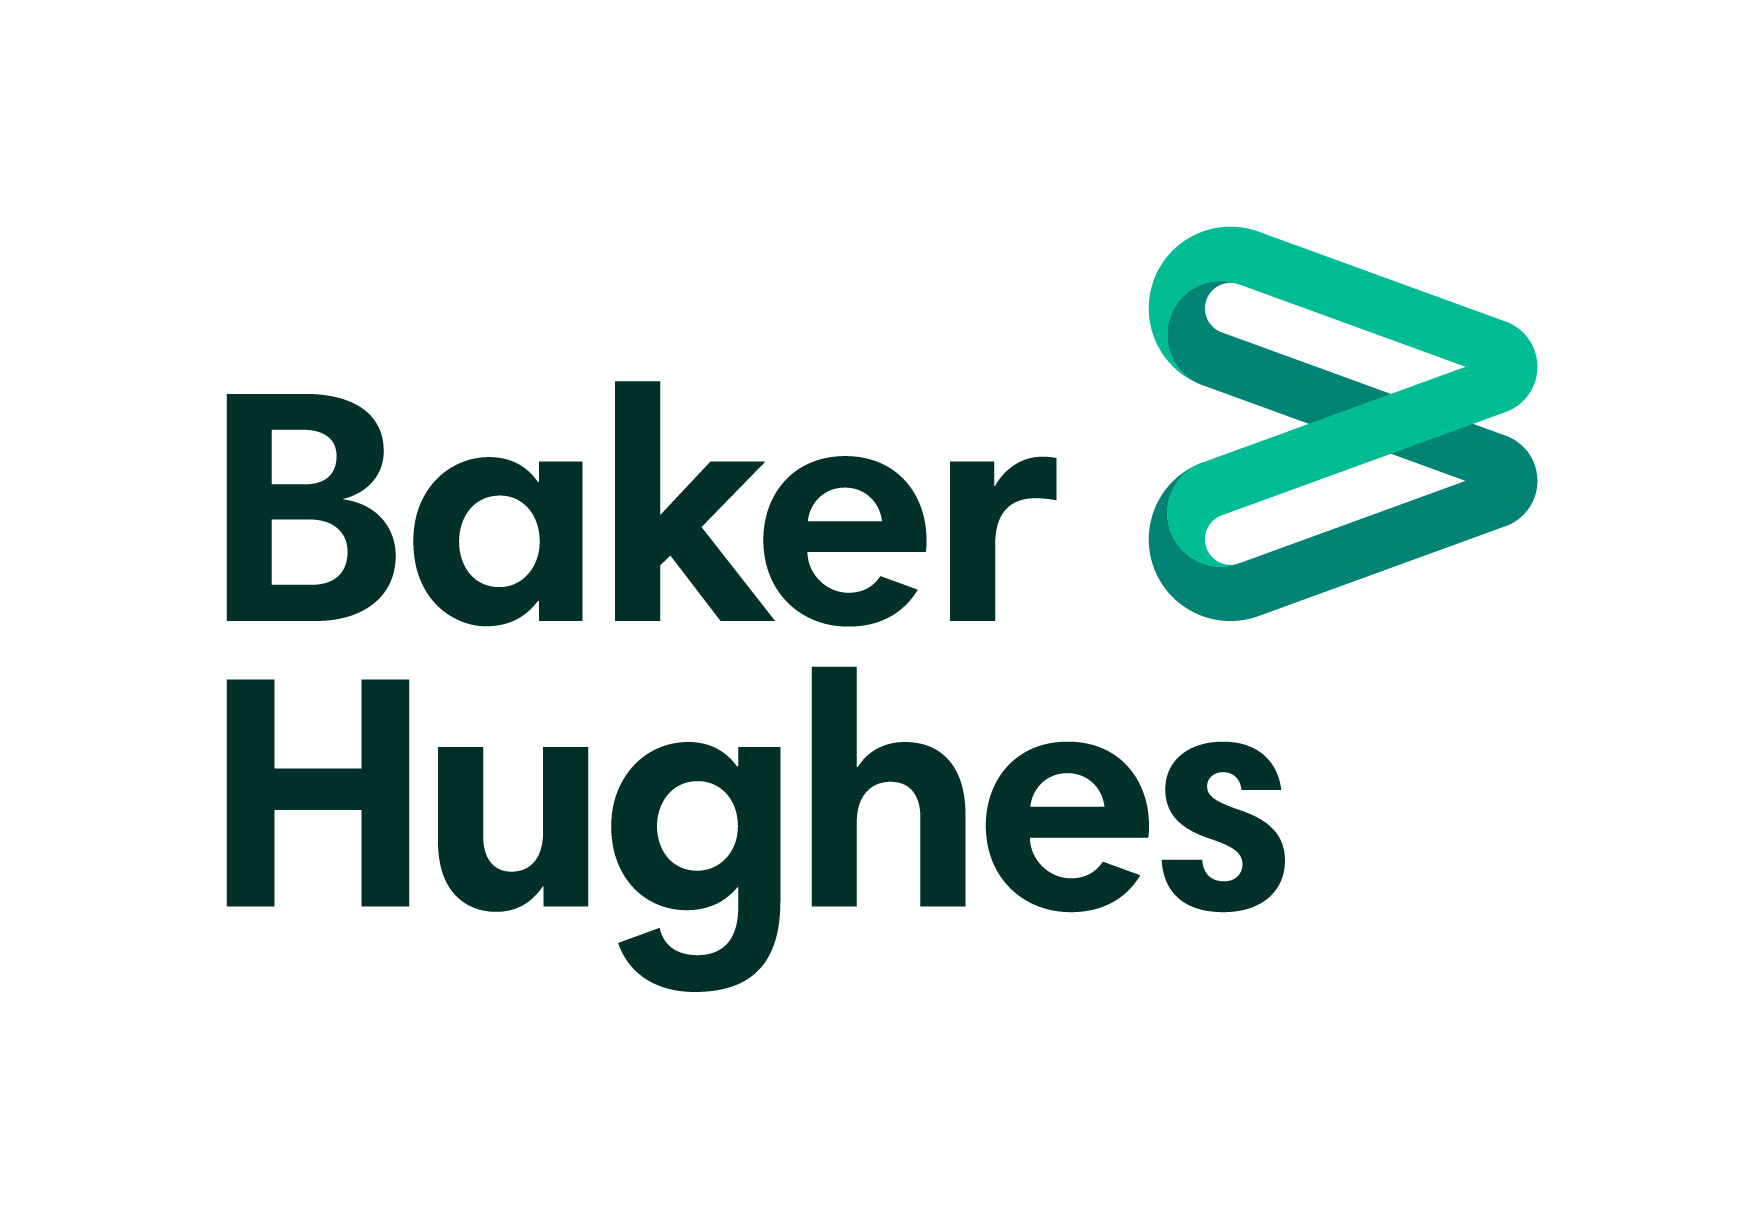 The logo of Baker Hughes (BKR) is seen in this image provided July 21, 2020. Baker Hughes/Handout via REUTERS THIS IMAGE HAS BEEN SUPPLIED BY A THIRD PARTY. MANDATORY CREDIT/File Photo